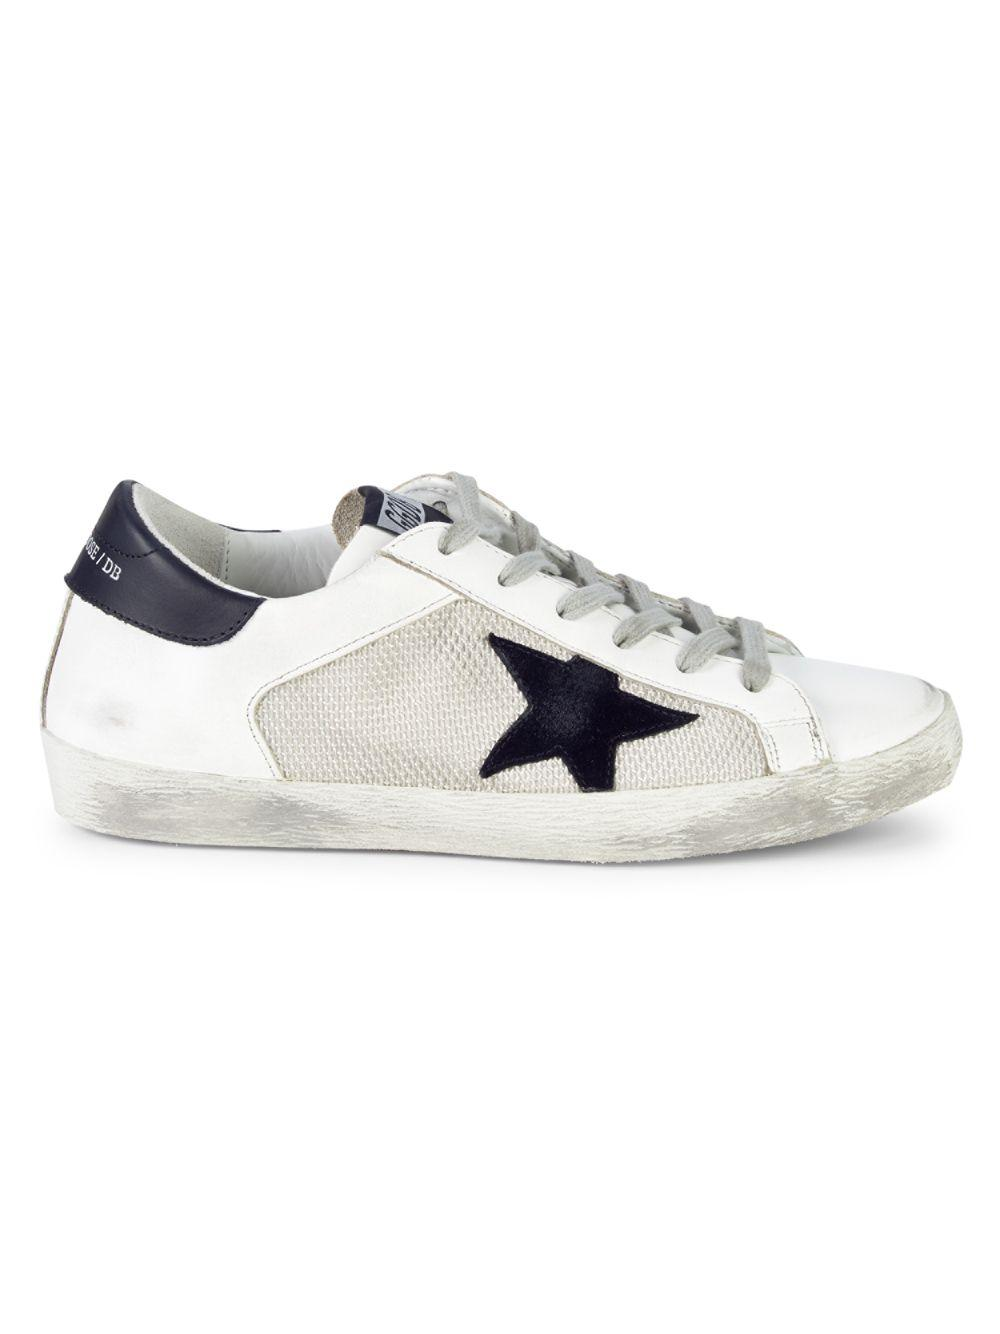 00bbaef6810 Lyst - Golden Goose Deluxe Brand Superstar Mixed Media Sneakers in White